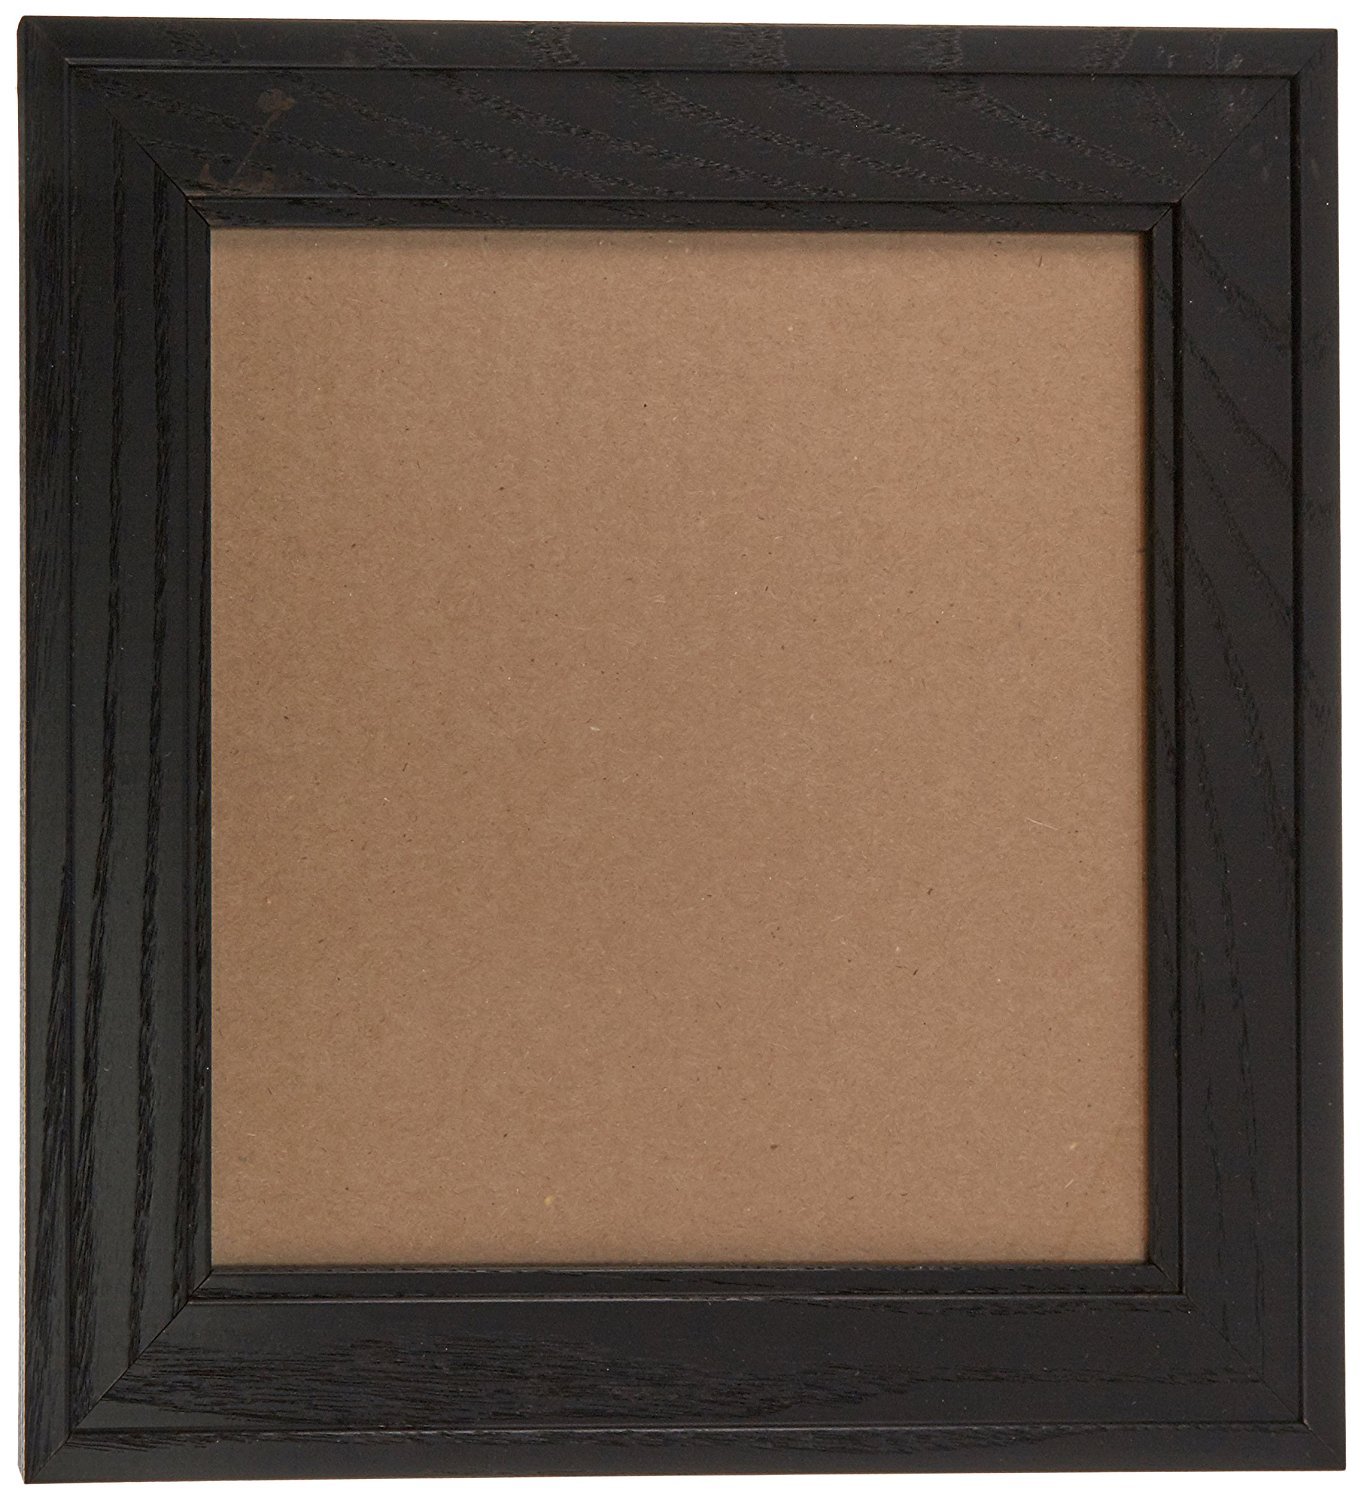 Cheap 18x24 Wood Frame, find 18x24 Wood Frame deals on line at ...